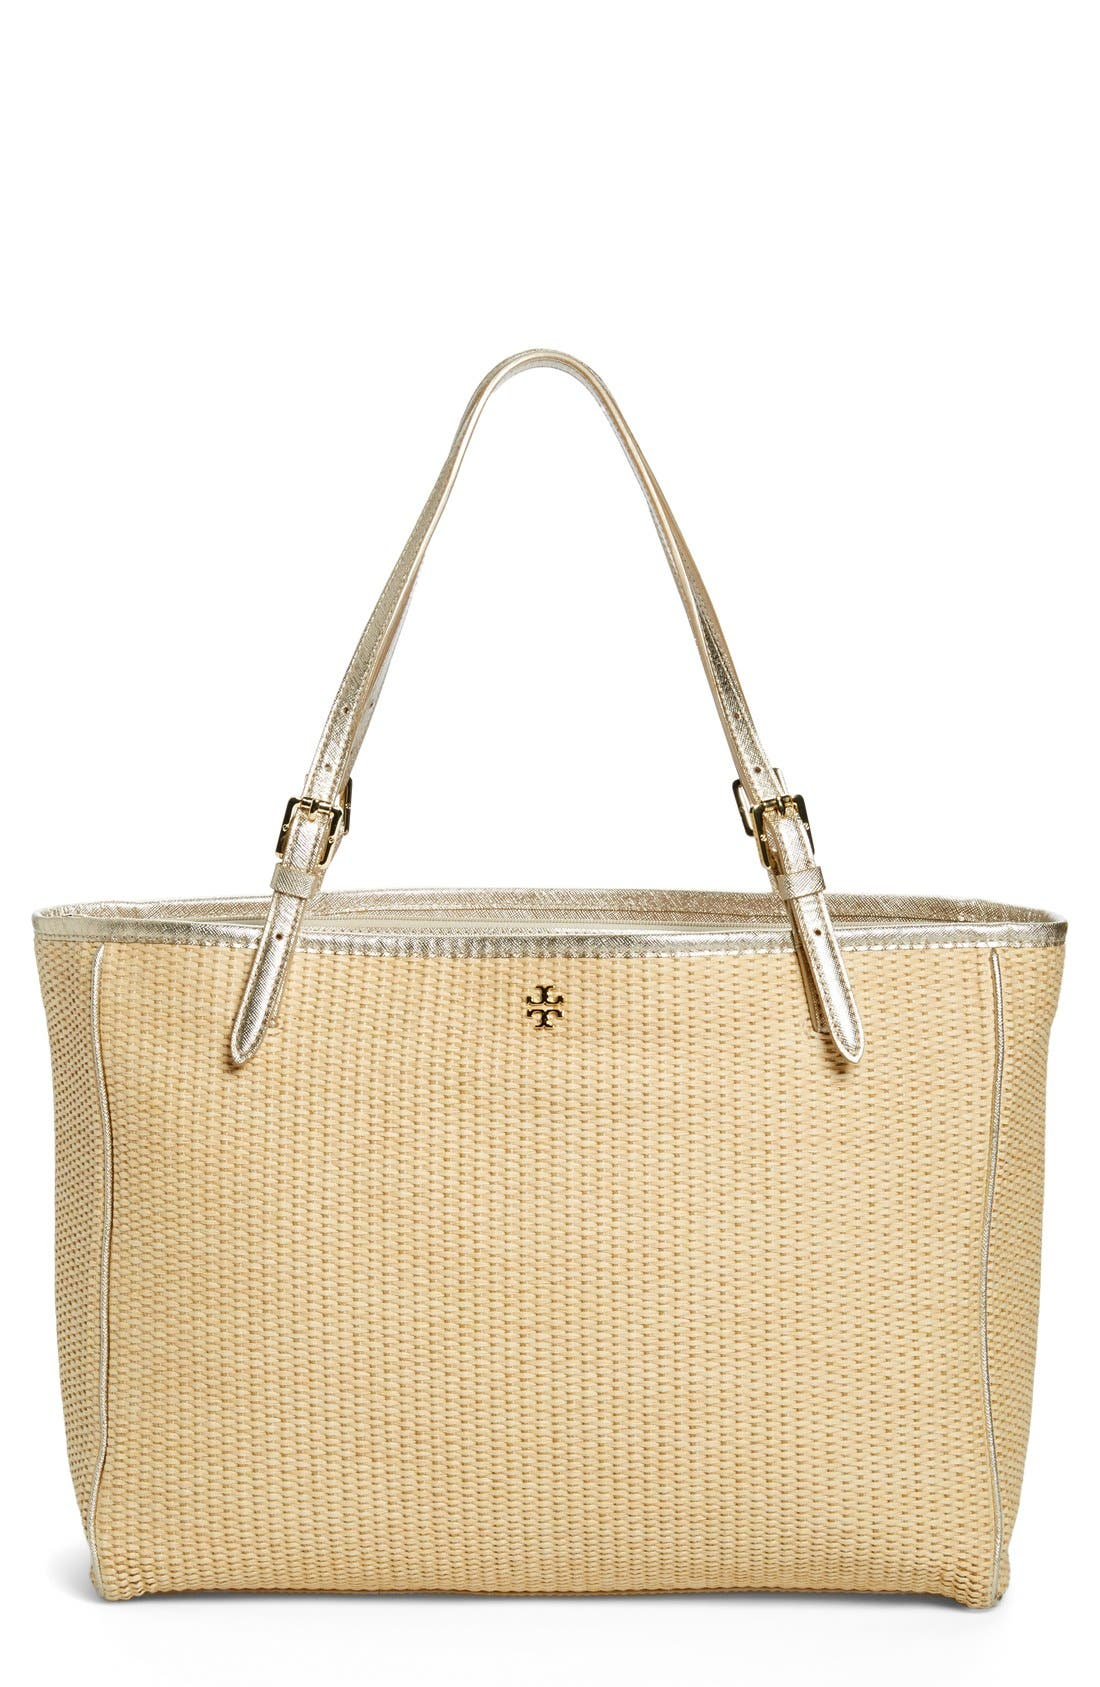 Main Image - Tory Burch 'York' Straw Buckle Tote